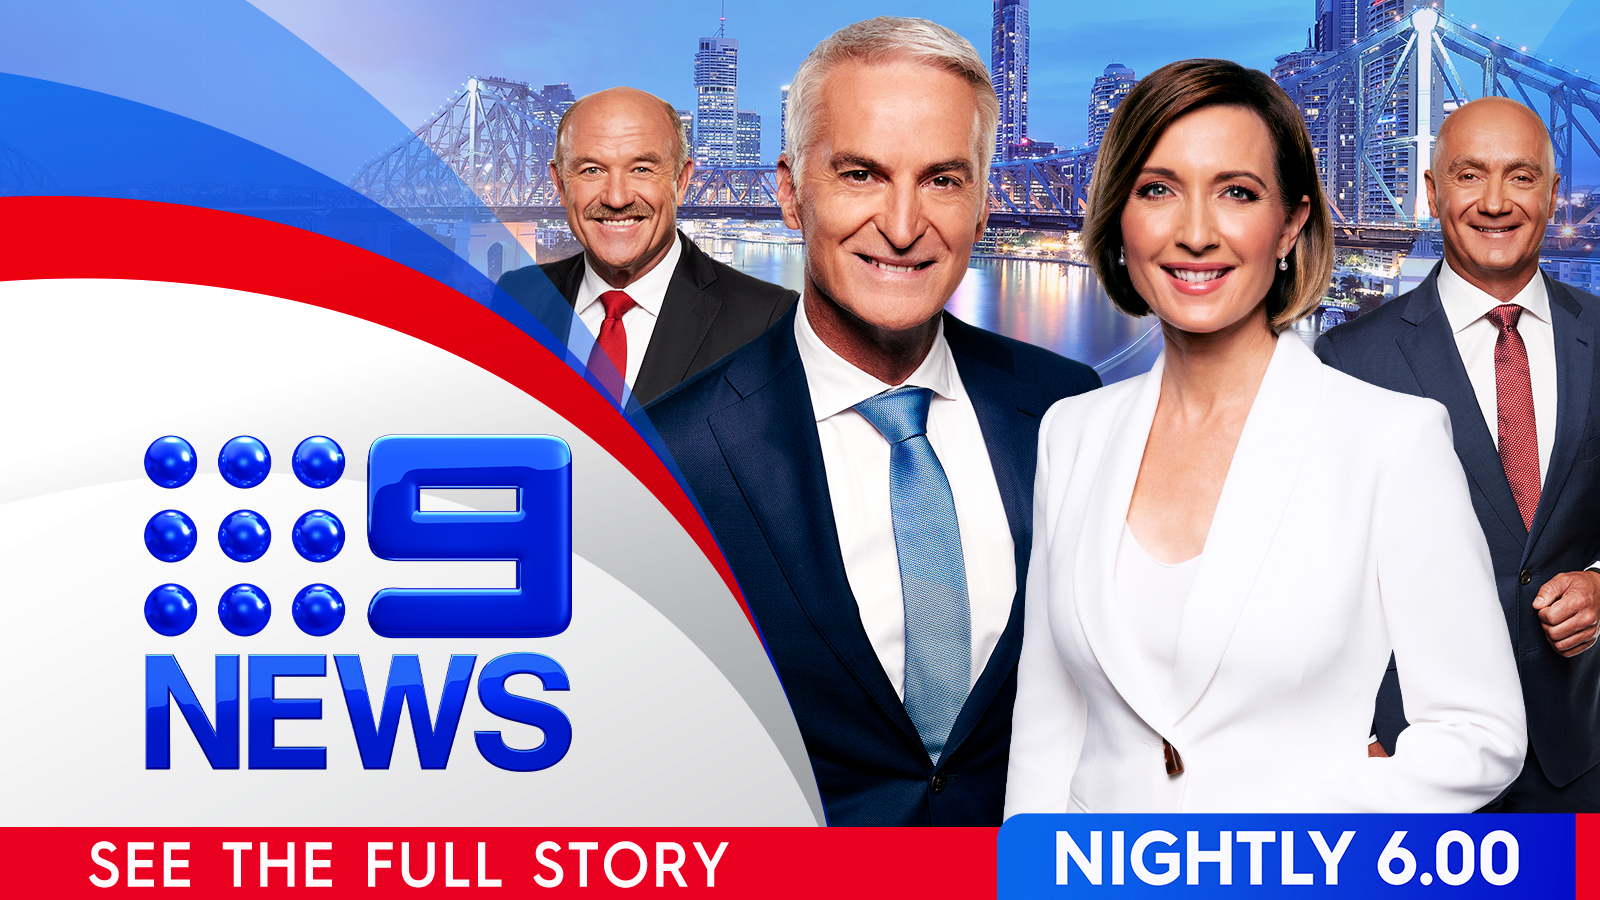 Brisbane 9 news meet the team